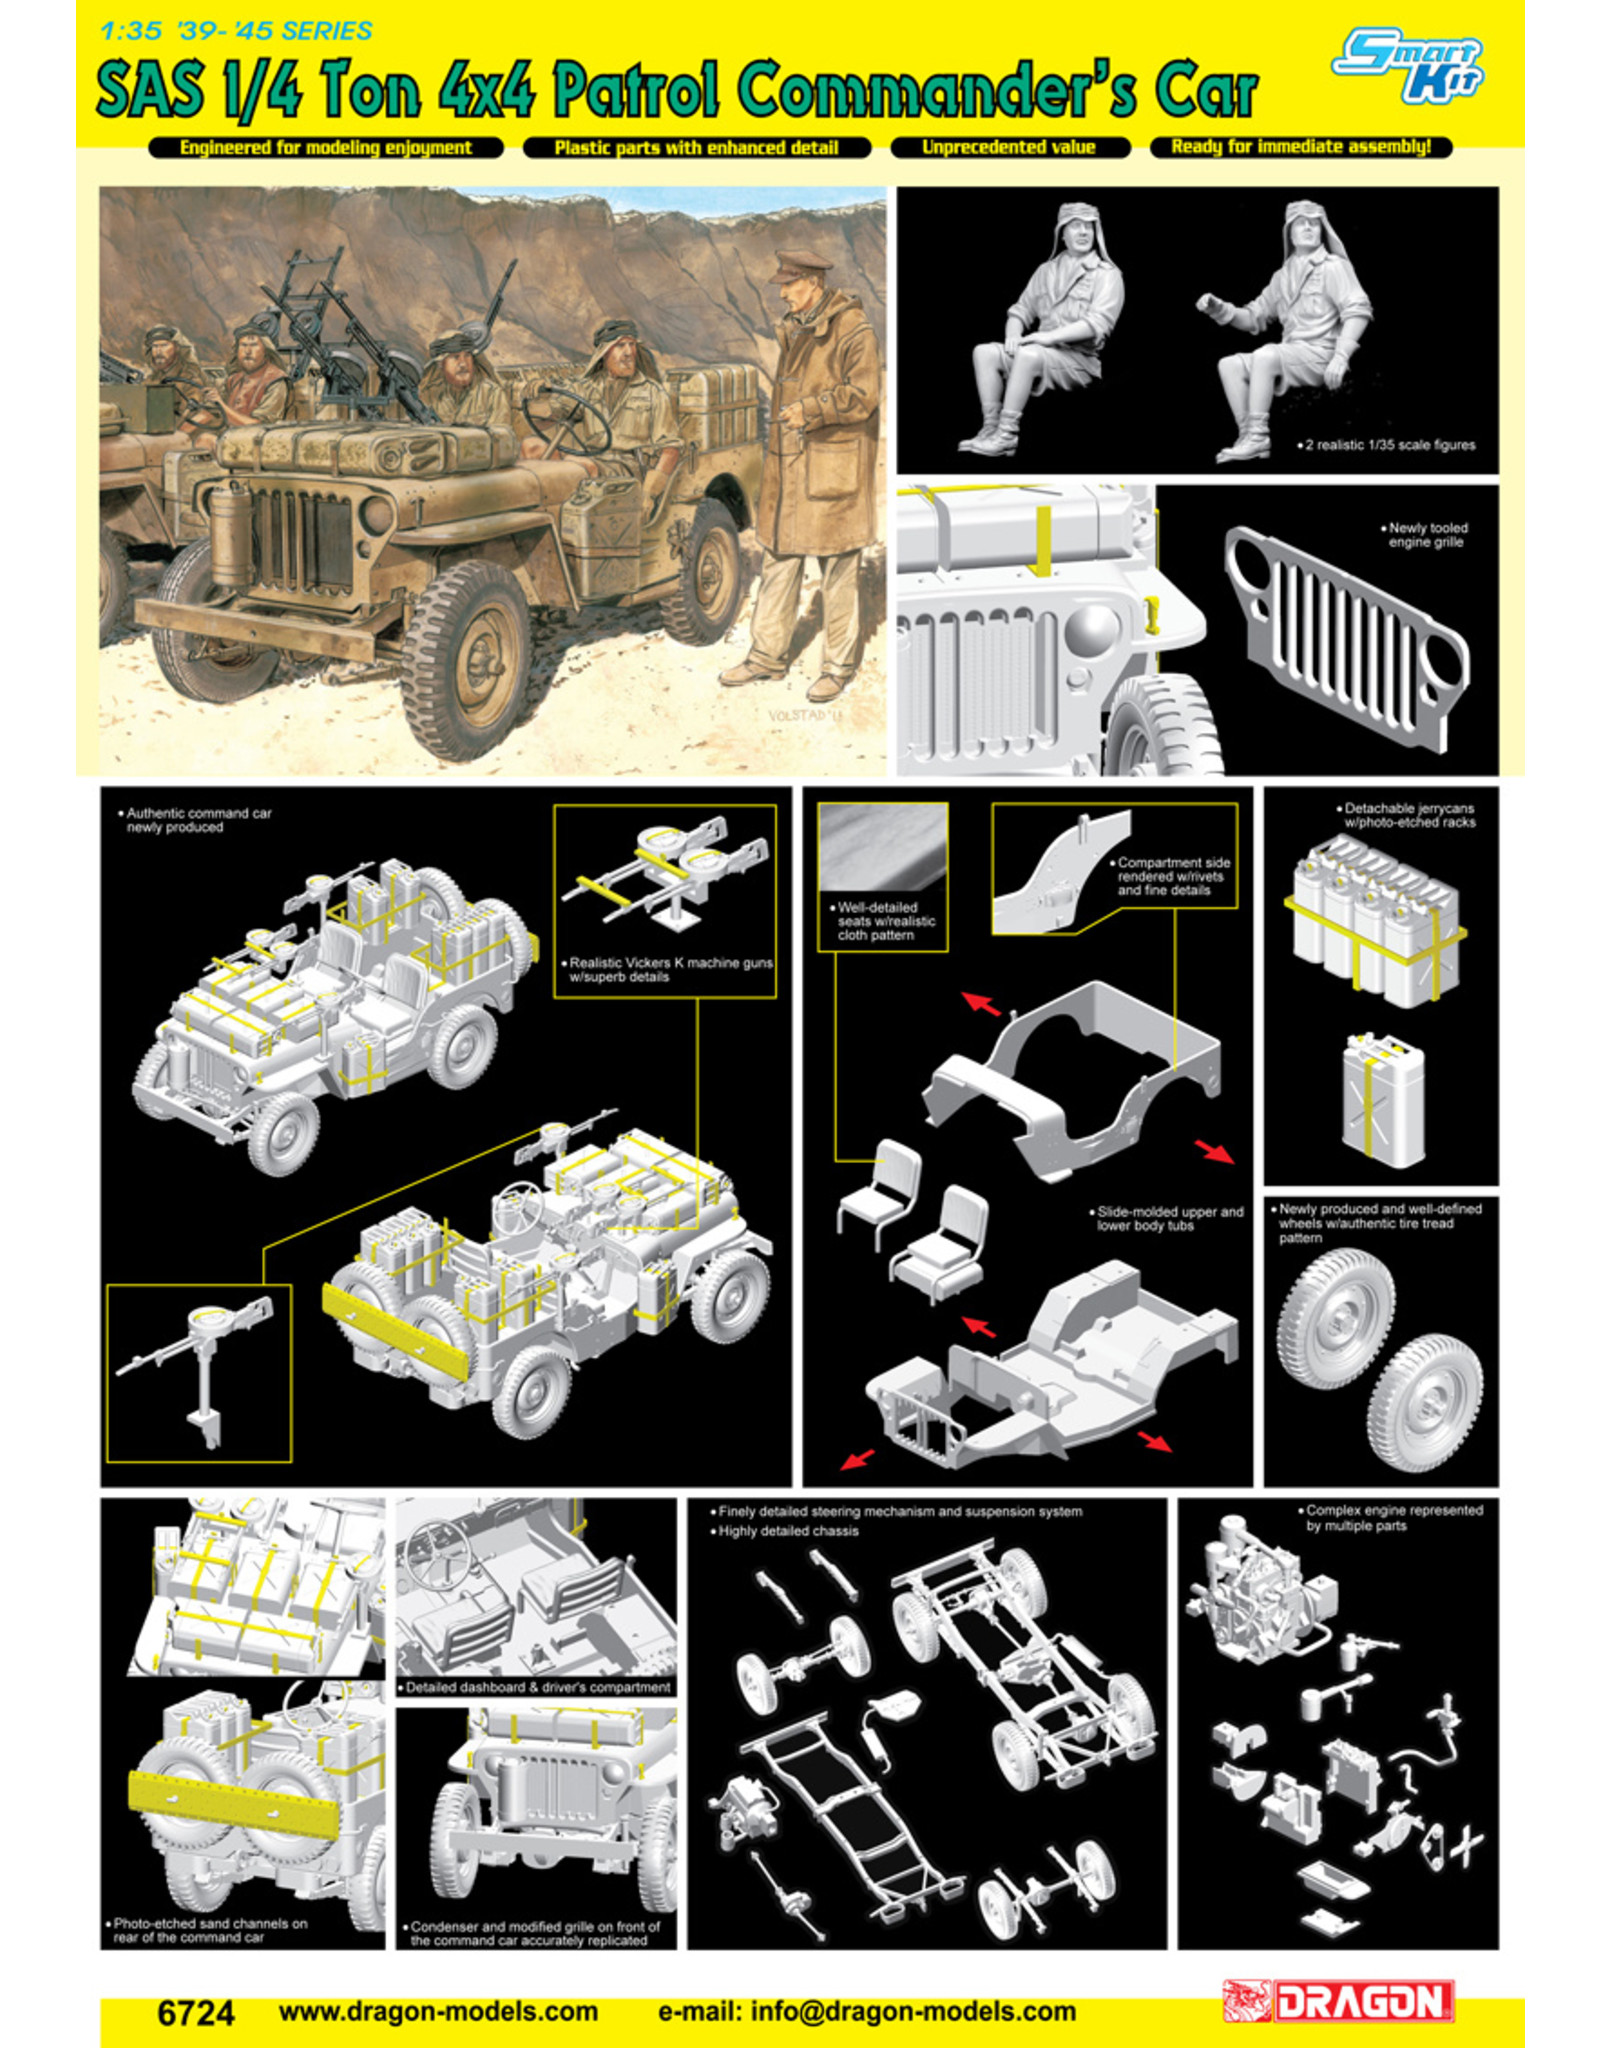 Dragon Models 6724 - 1/35 SAS 1/4 Ton 4x4 Patrol Commander's Car